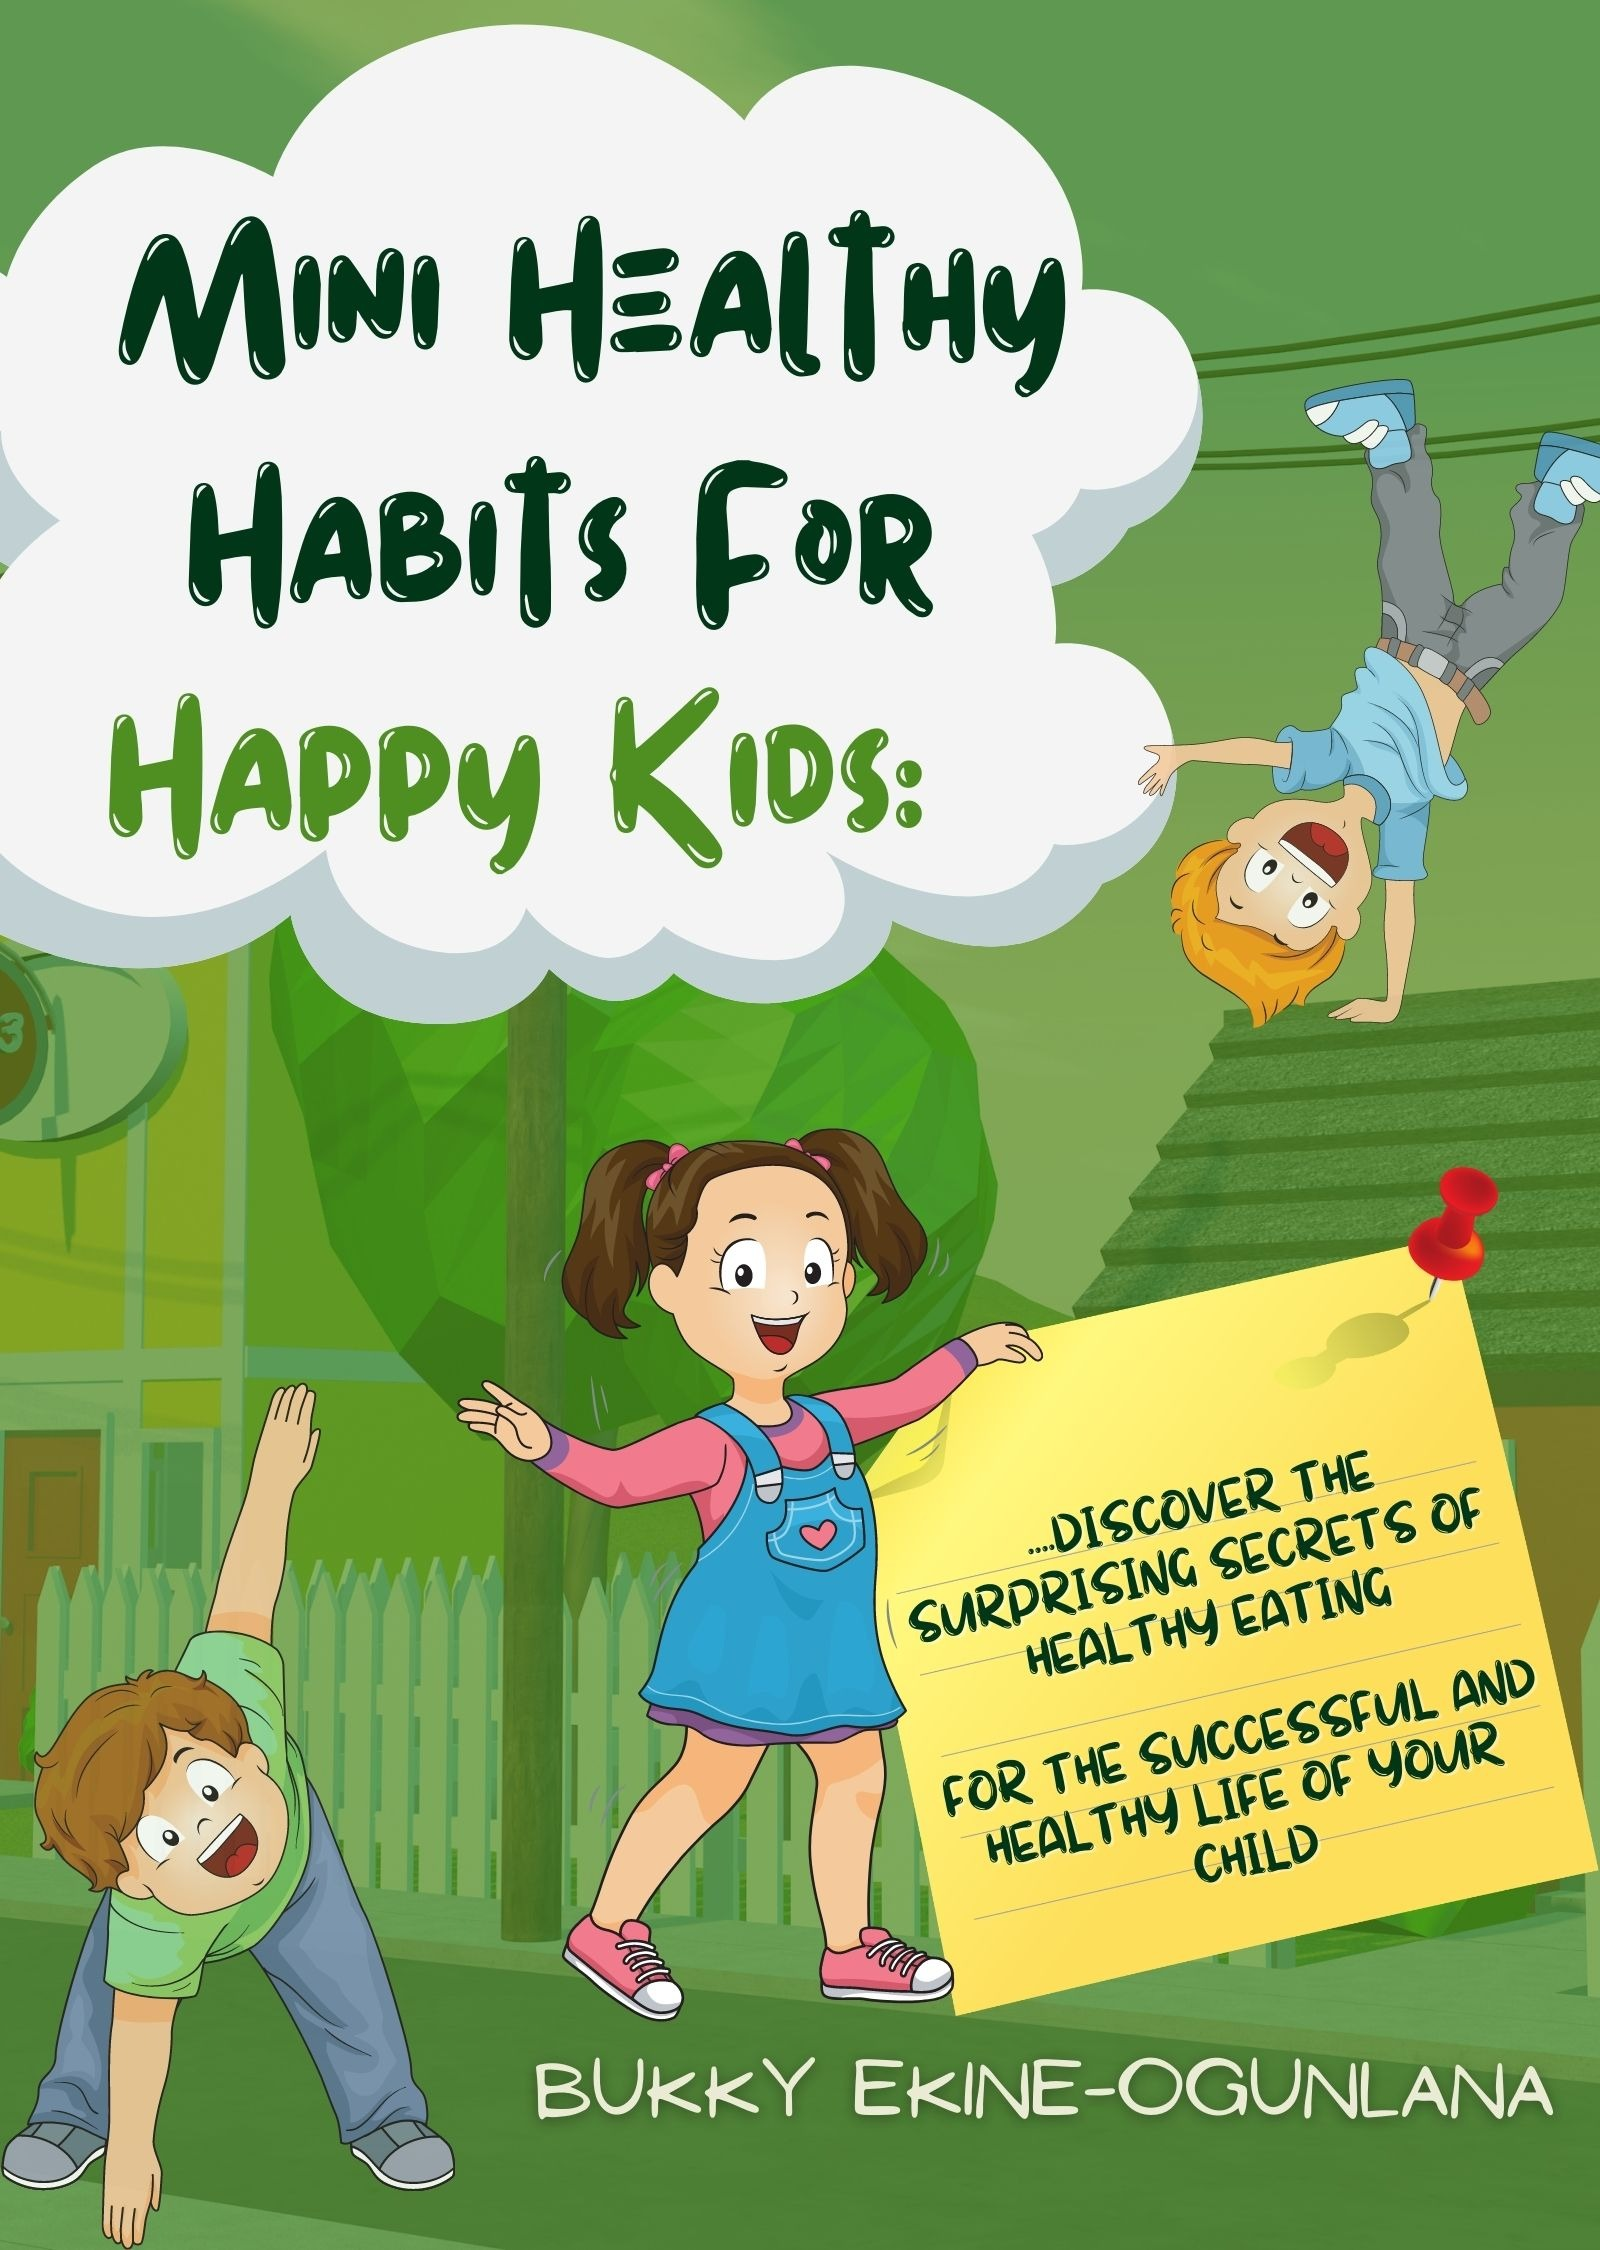 Mini Healthy Habits for Happy Kids: Discover The Surprising Secre